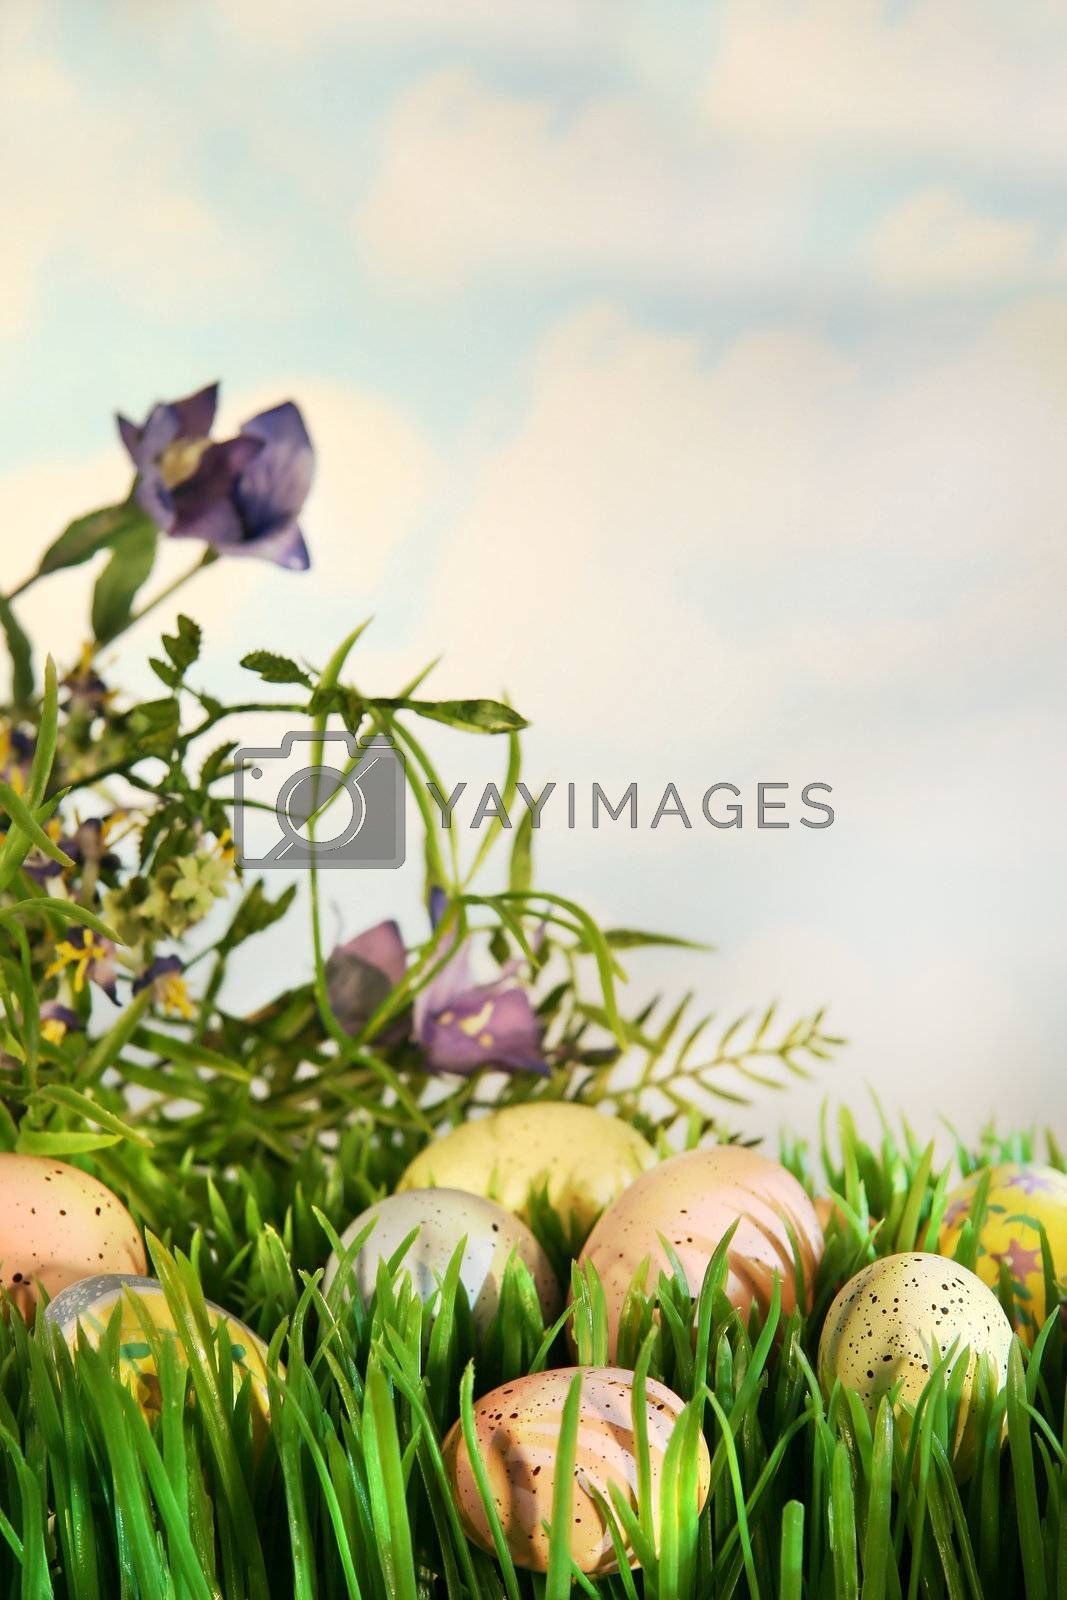 Colorful Easter eggs hidden in the grass